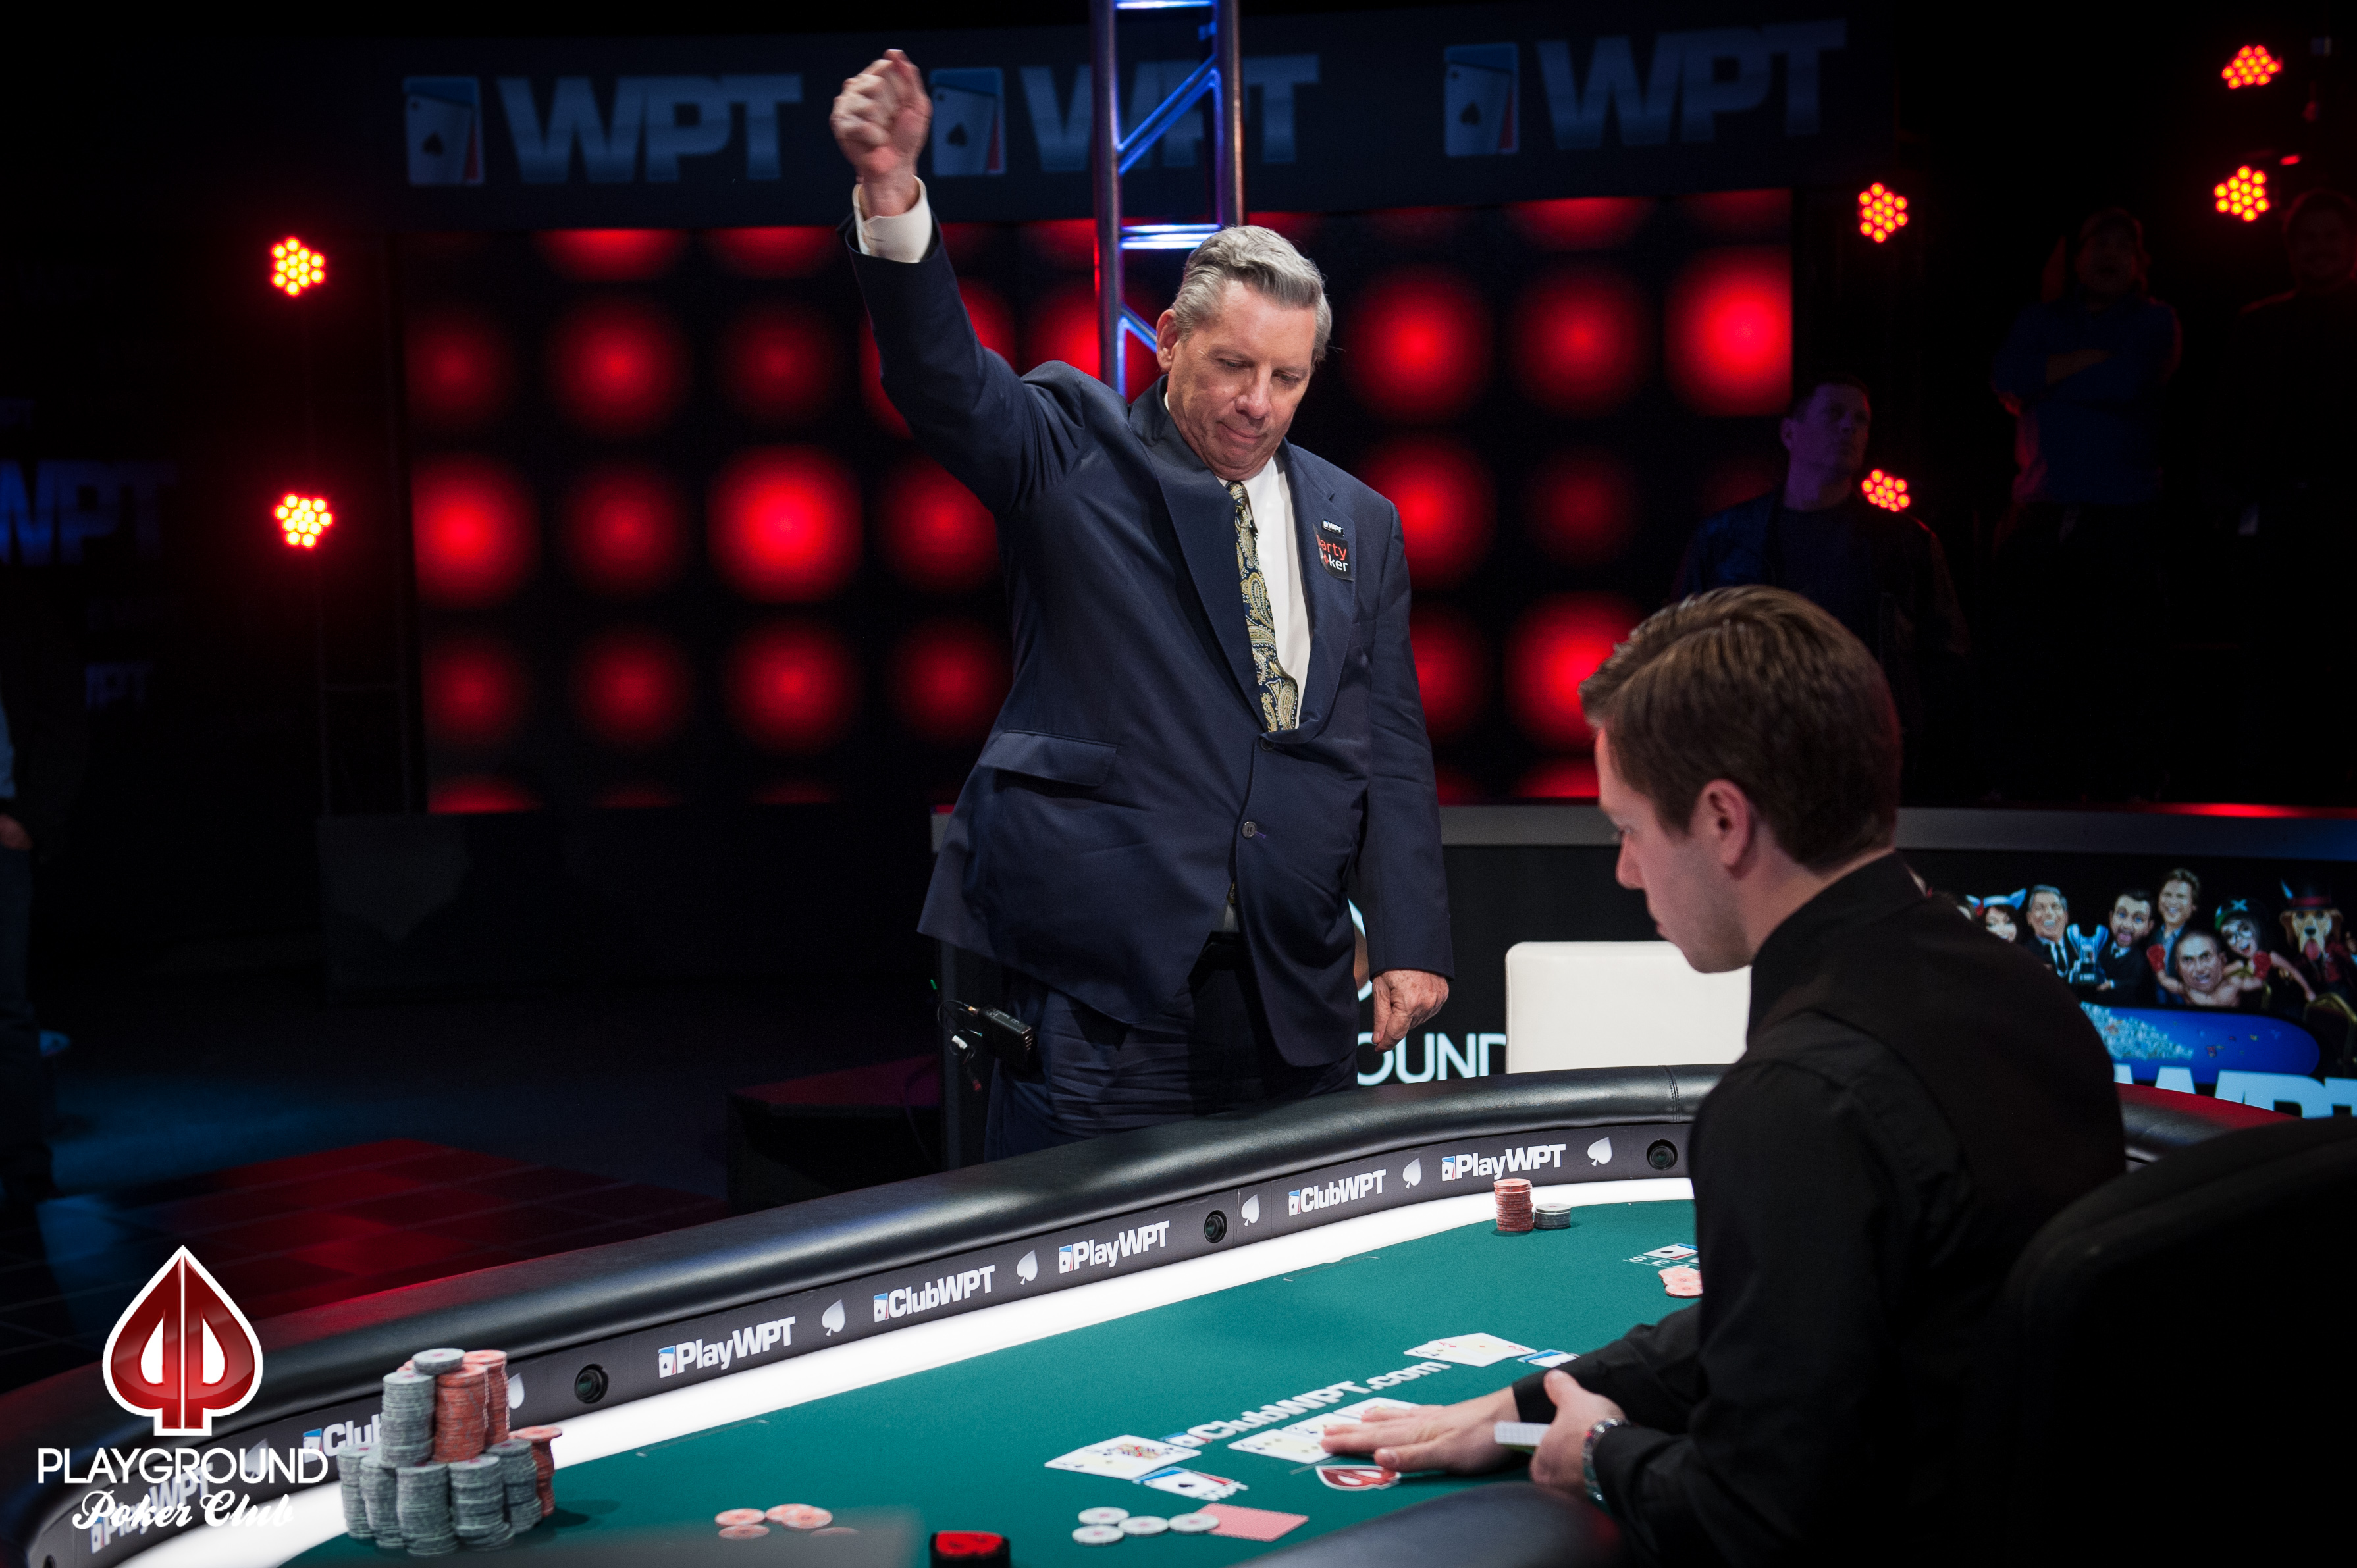 69-year-old Mike Sexton won his first WPT title